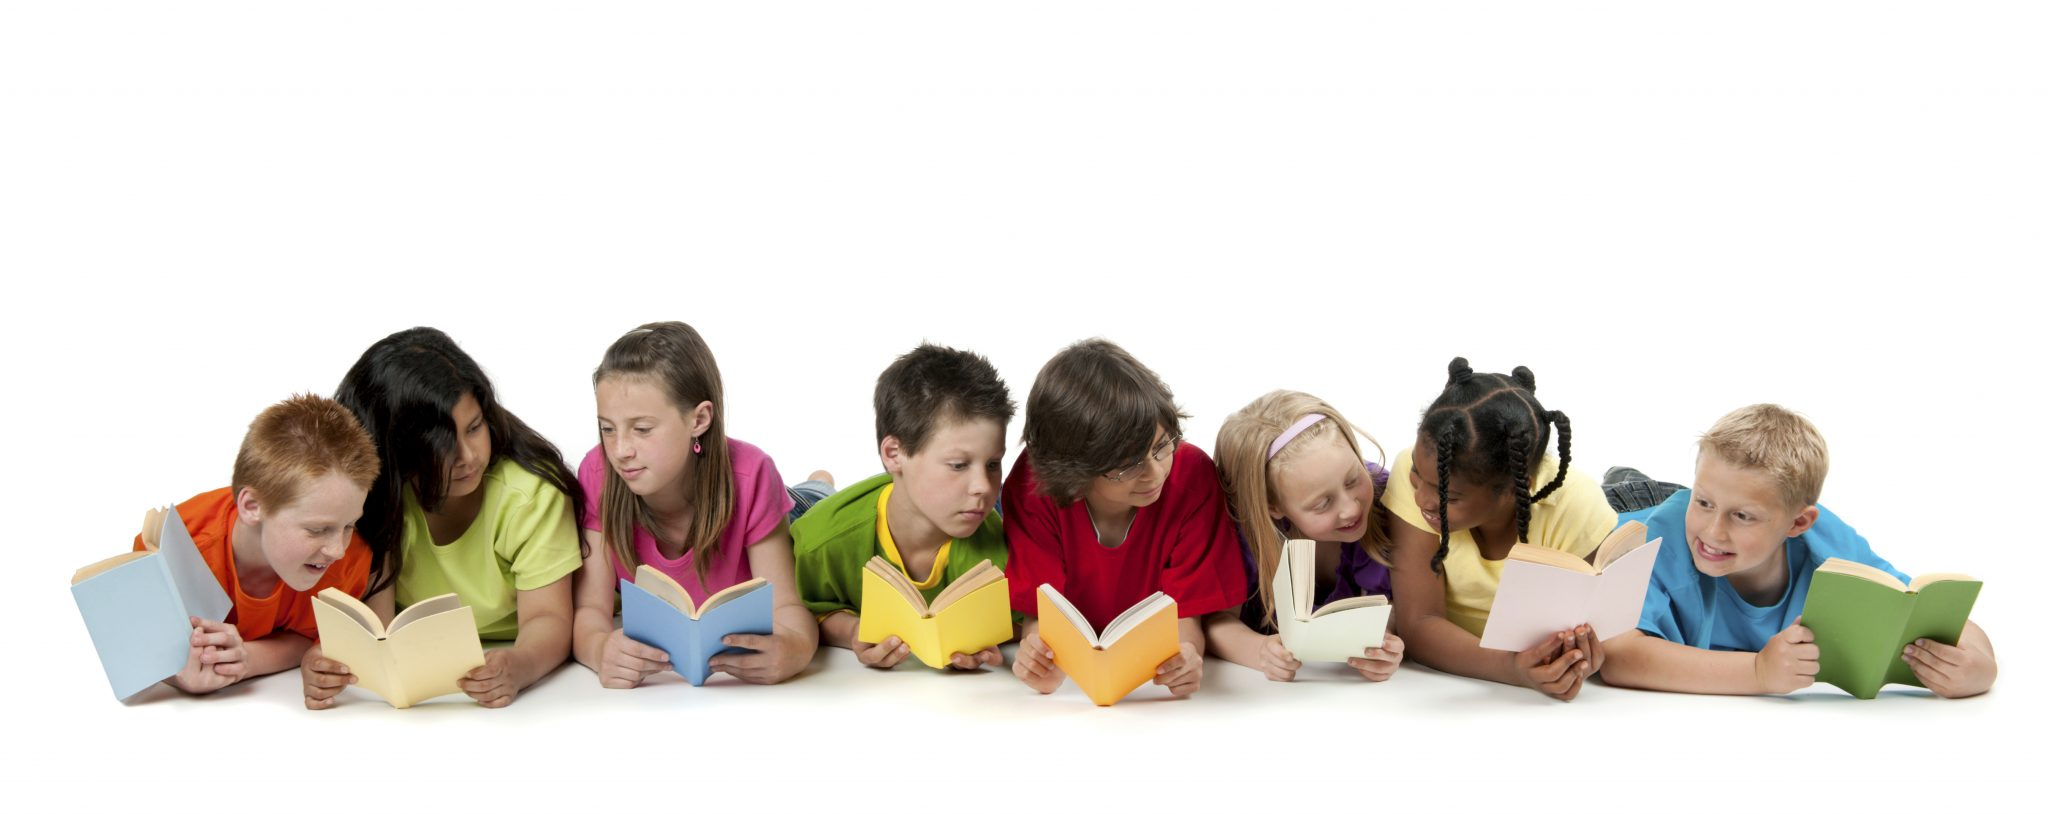 reading as a childhood experience